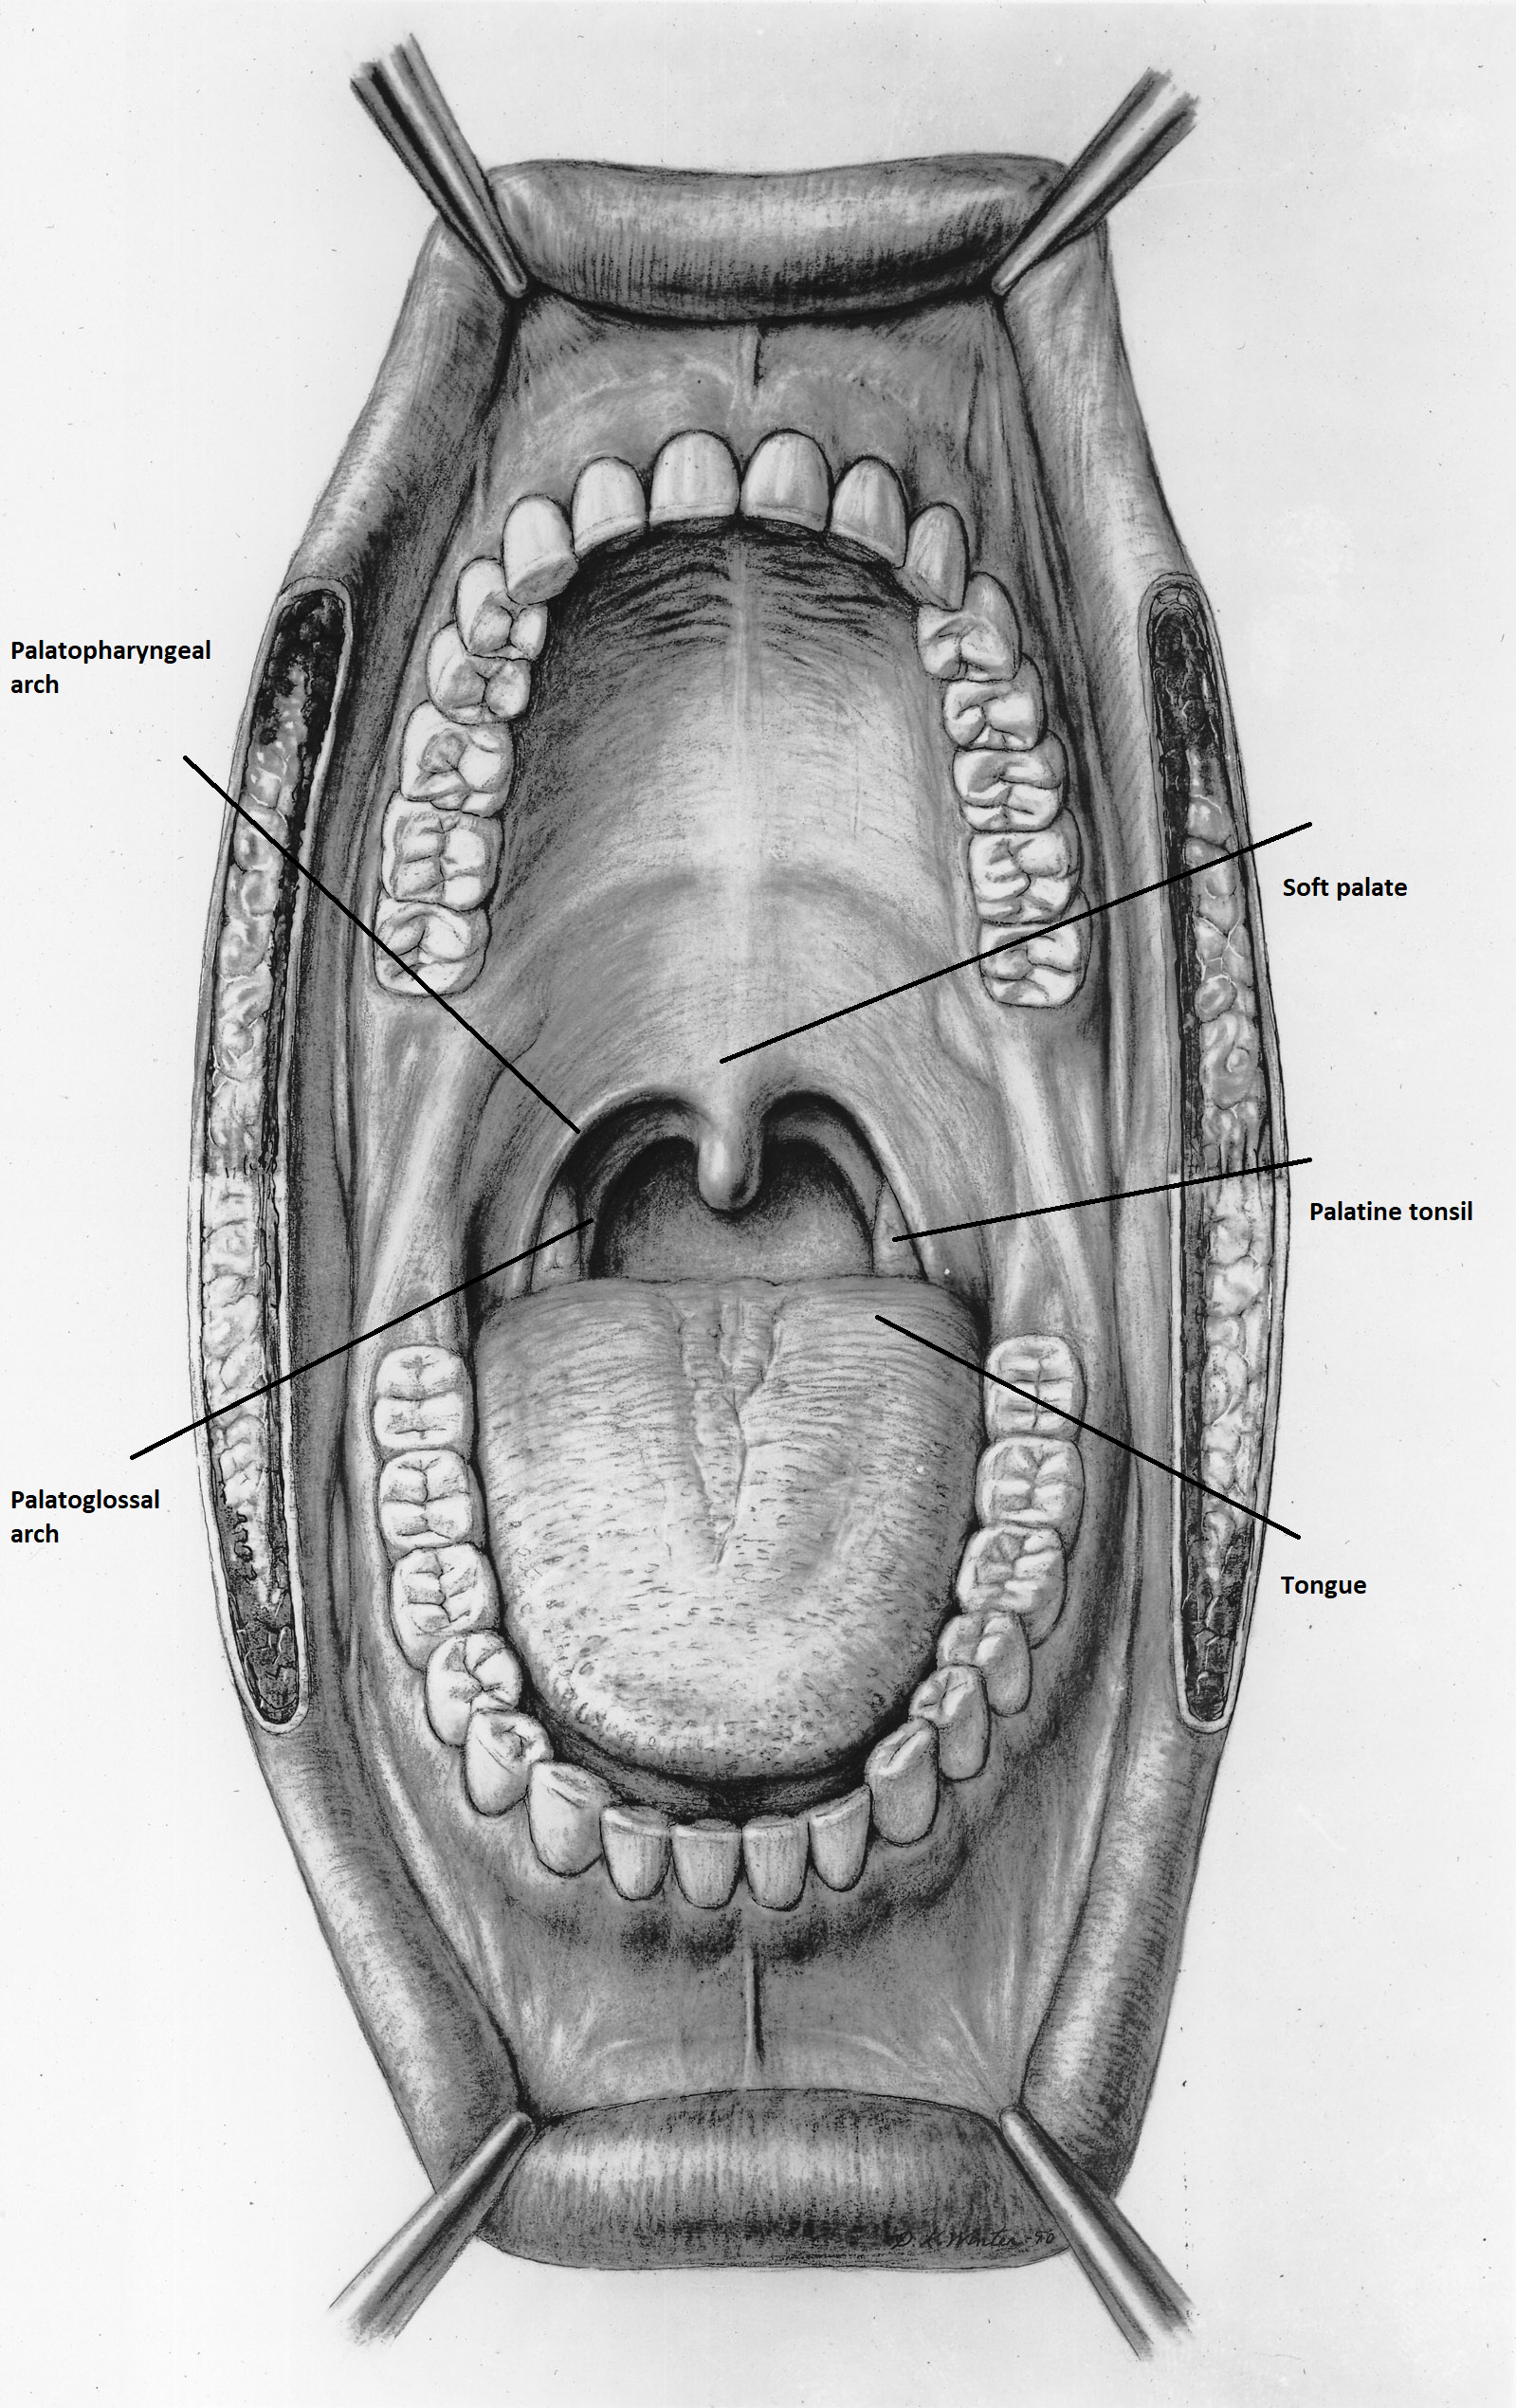 TODAY'S STRATEGIES IN OROPHARYNGEAL CANCER TREATMENT Hpv positive base of the tongue cancer